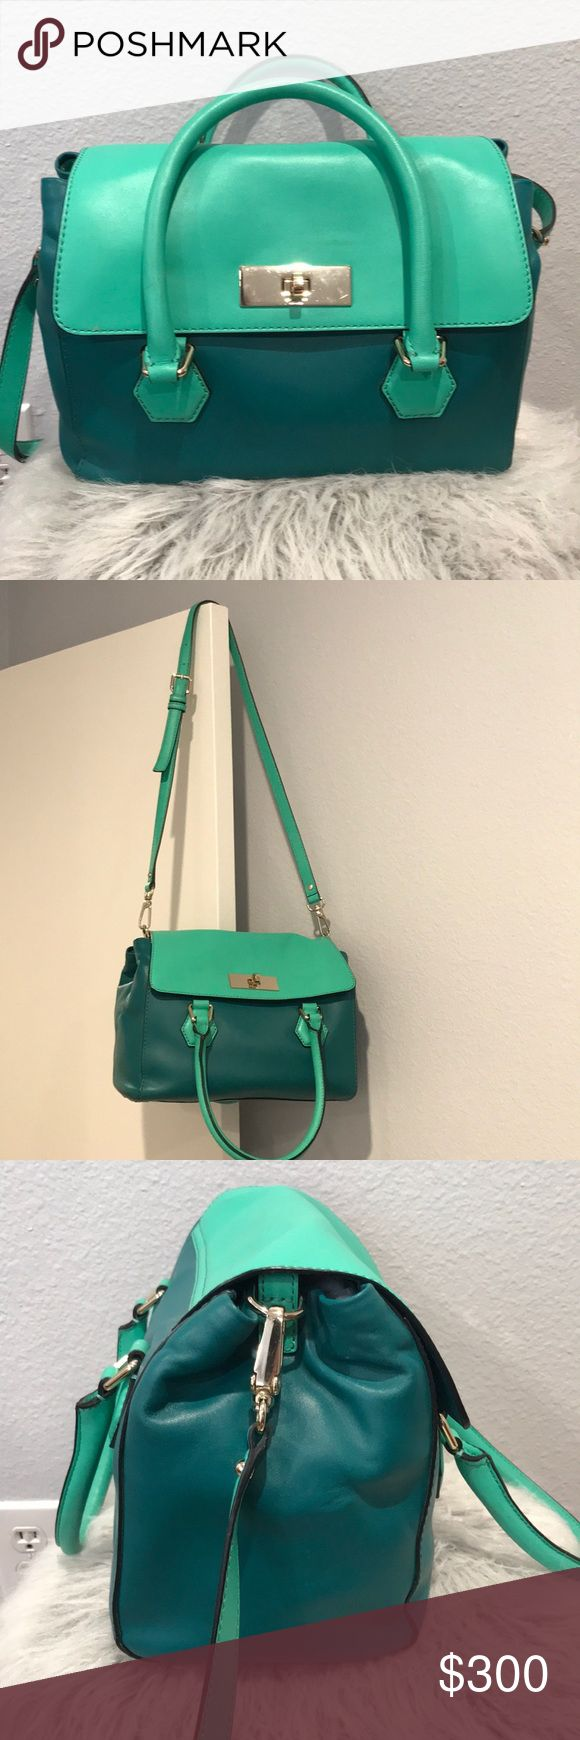 "Kate Spade Catherine Street Joanie Satchel Deep emerald Kate Spade Catherine Street Joanie crossbody satchel. Gorgeous two tone emerald hues front clasp closure with a 39"" shoulder strap, two handles, outer pocket, inner back wall zipper compartment, and 2 interior multi-function pockets. In great condition used a couple of time received as a gift. Kate spade duster included. kate spade Bags Satchels"